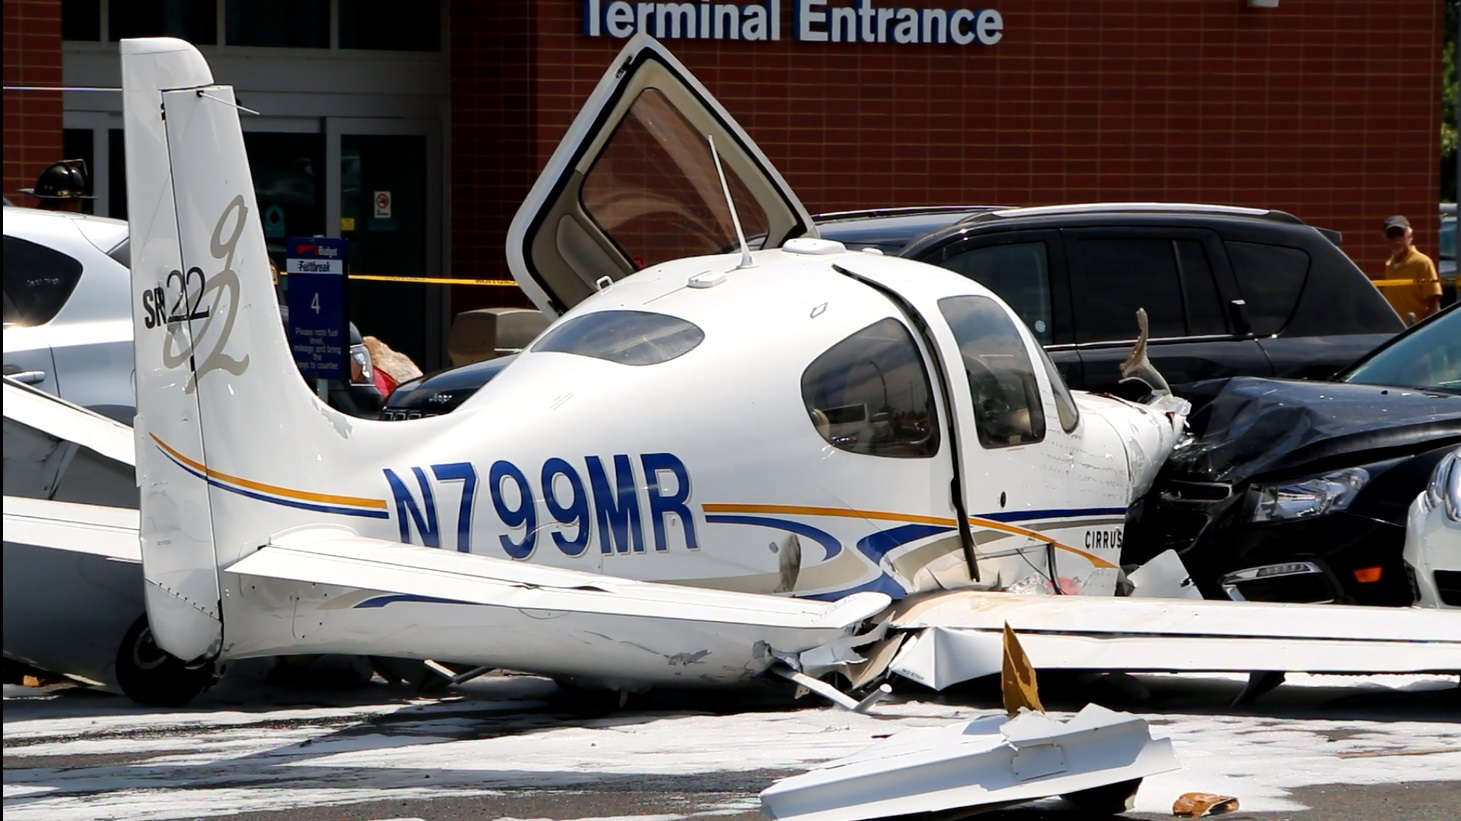 VIDEO: Single prop plane crashes through fence and into cars at Barnstable Municipal Airport…